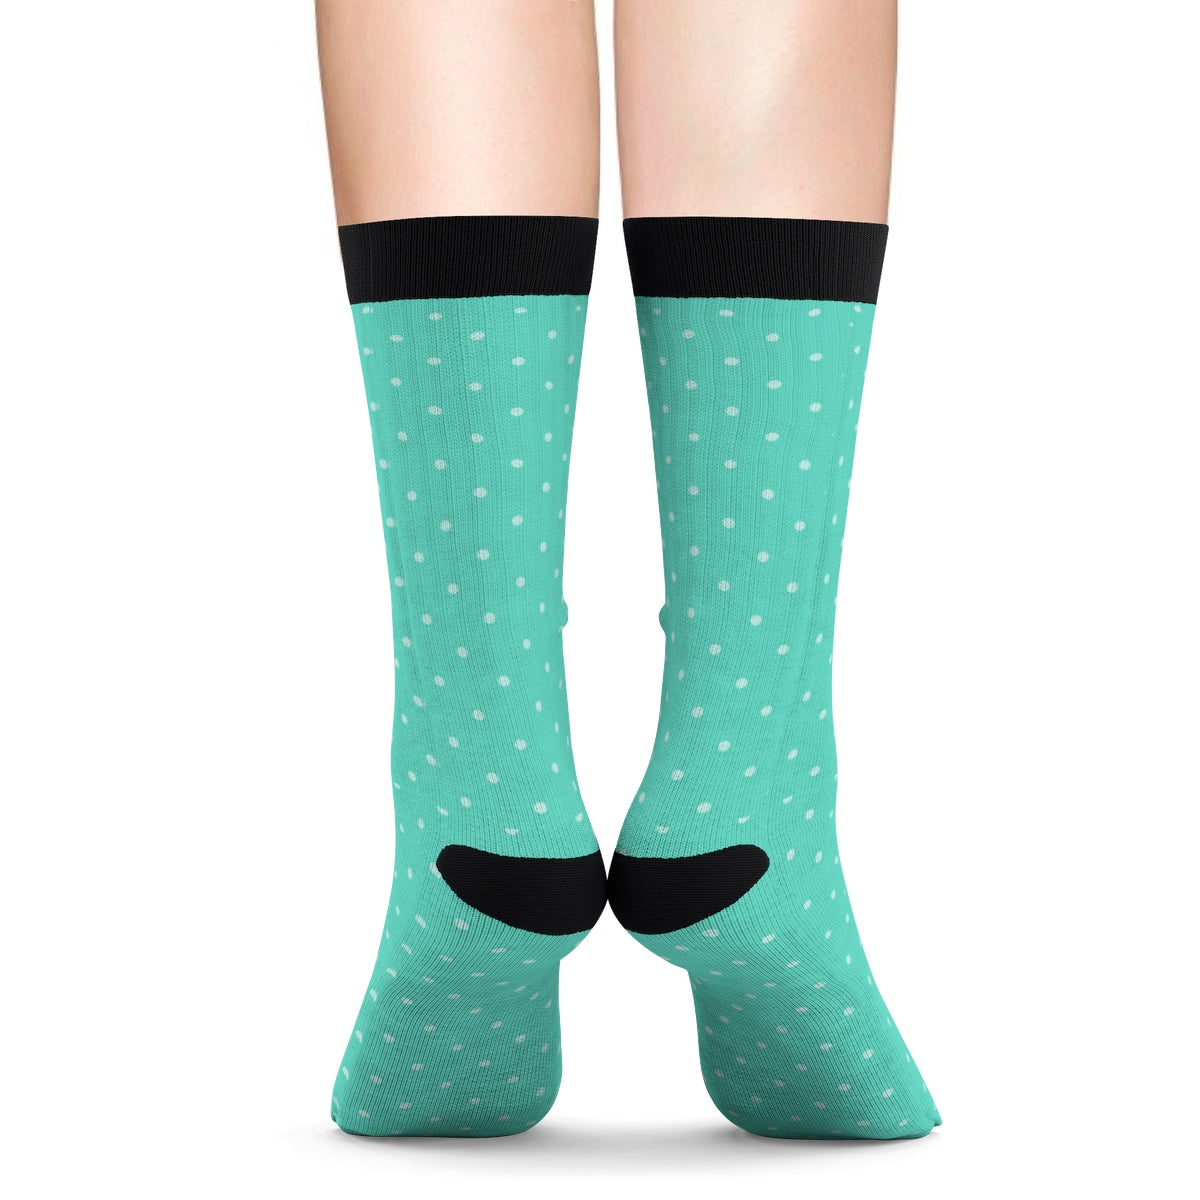 Teal Polka Dot Tube Socks